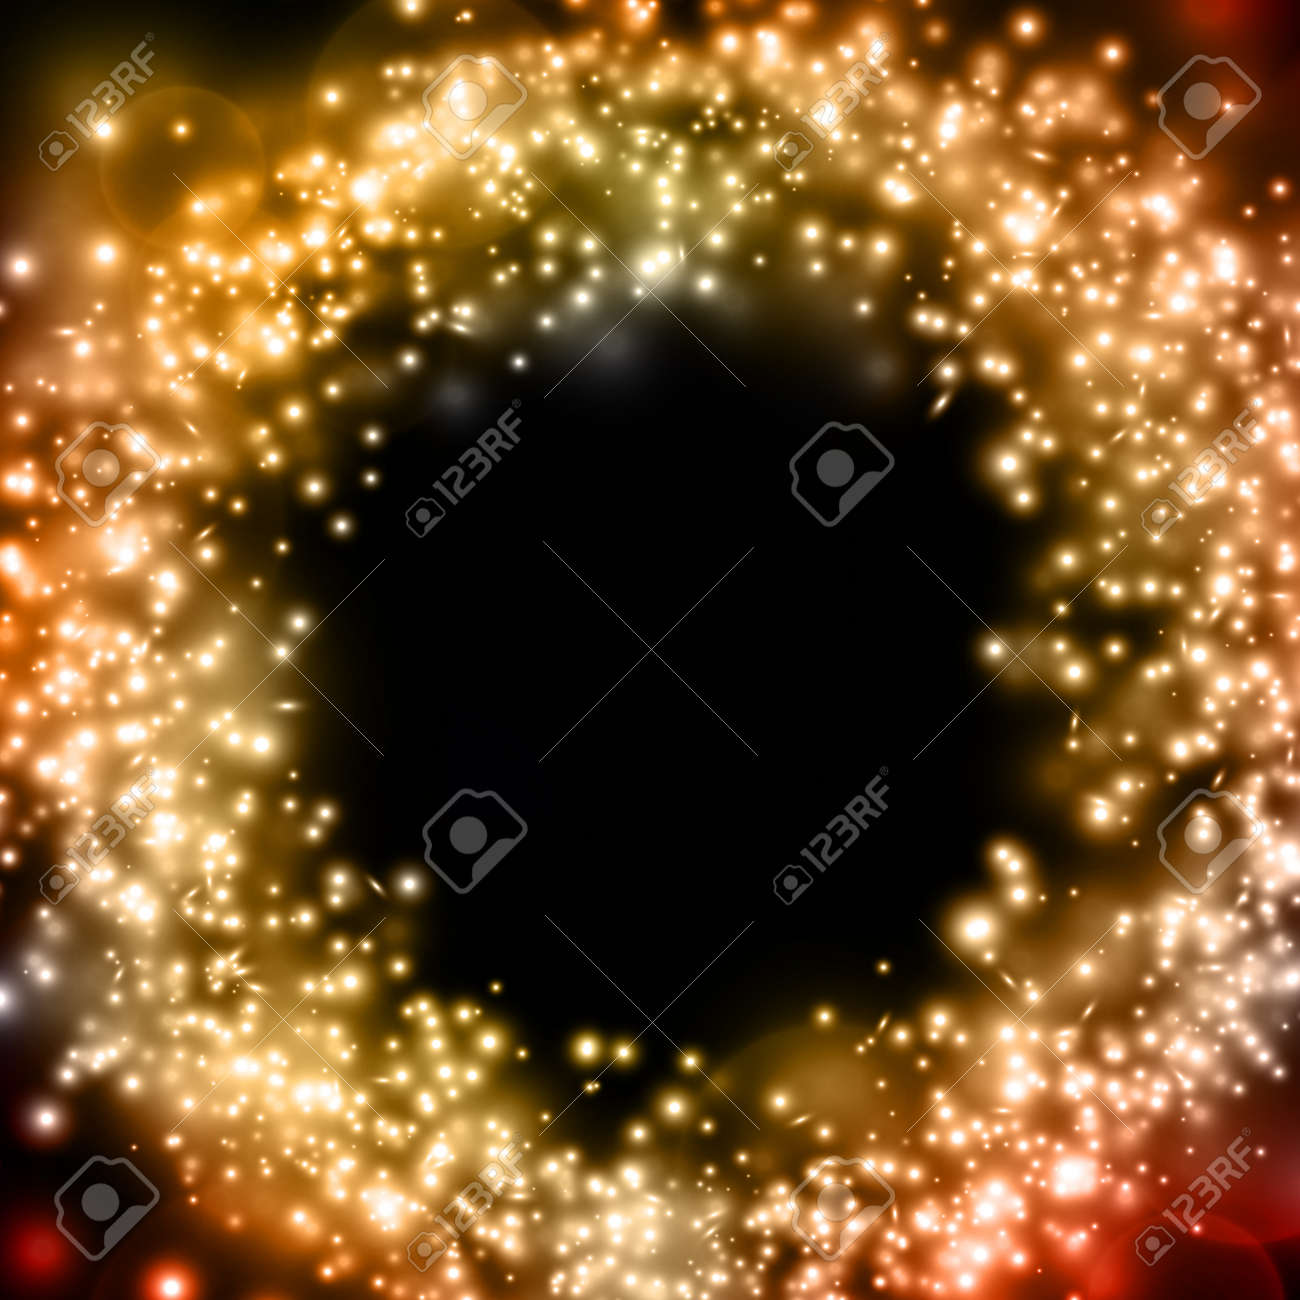 Abstract vector luminous gold background - 14580692